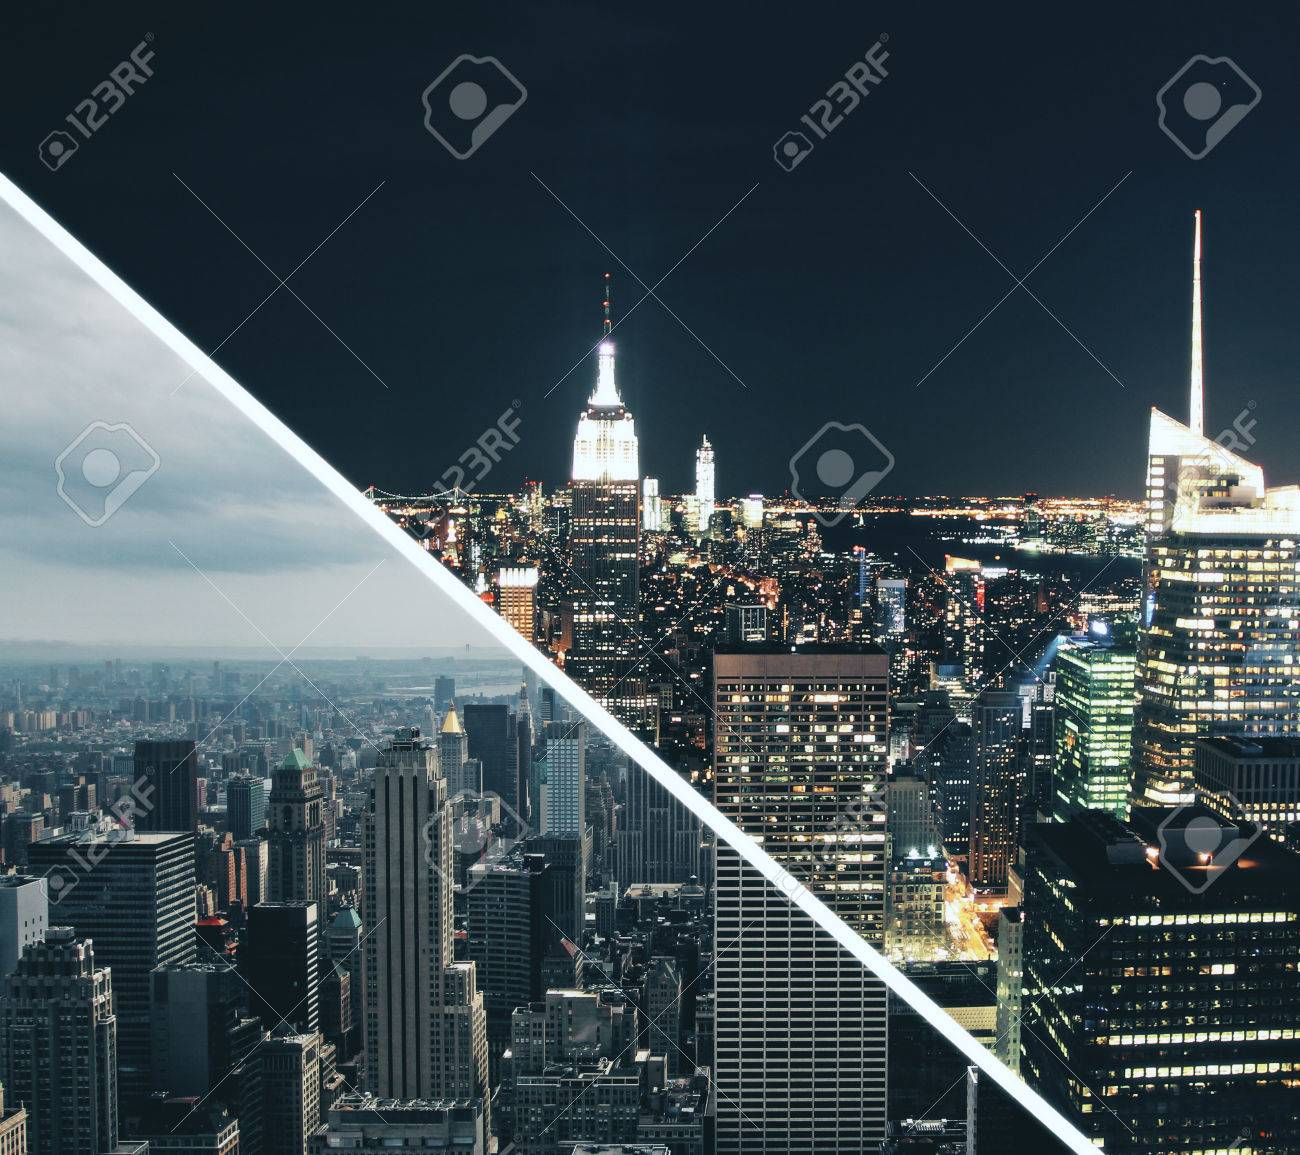 Abstract Day And Night City Wallpaper Stock Photo